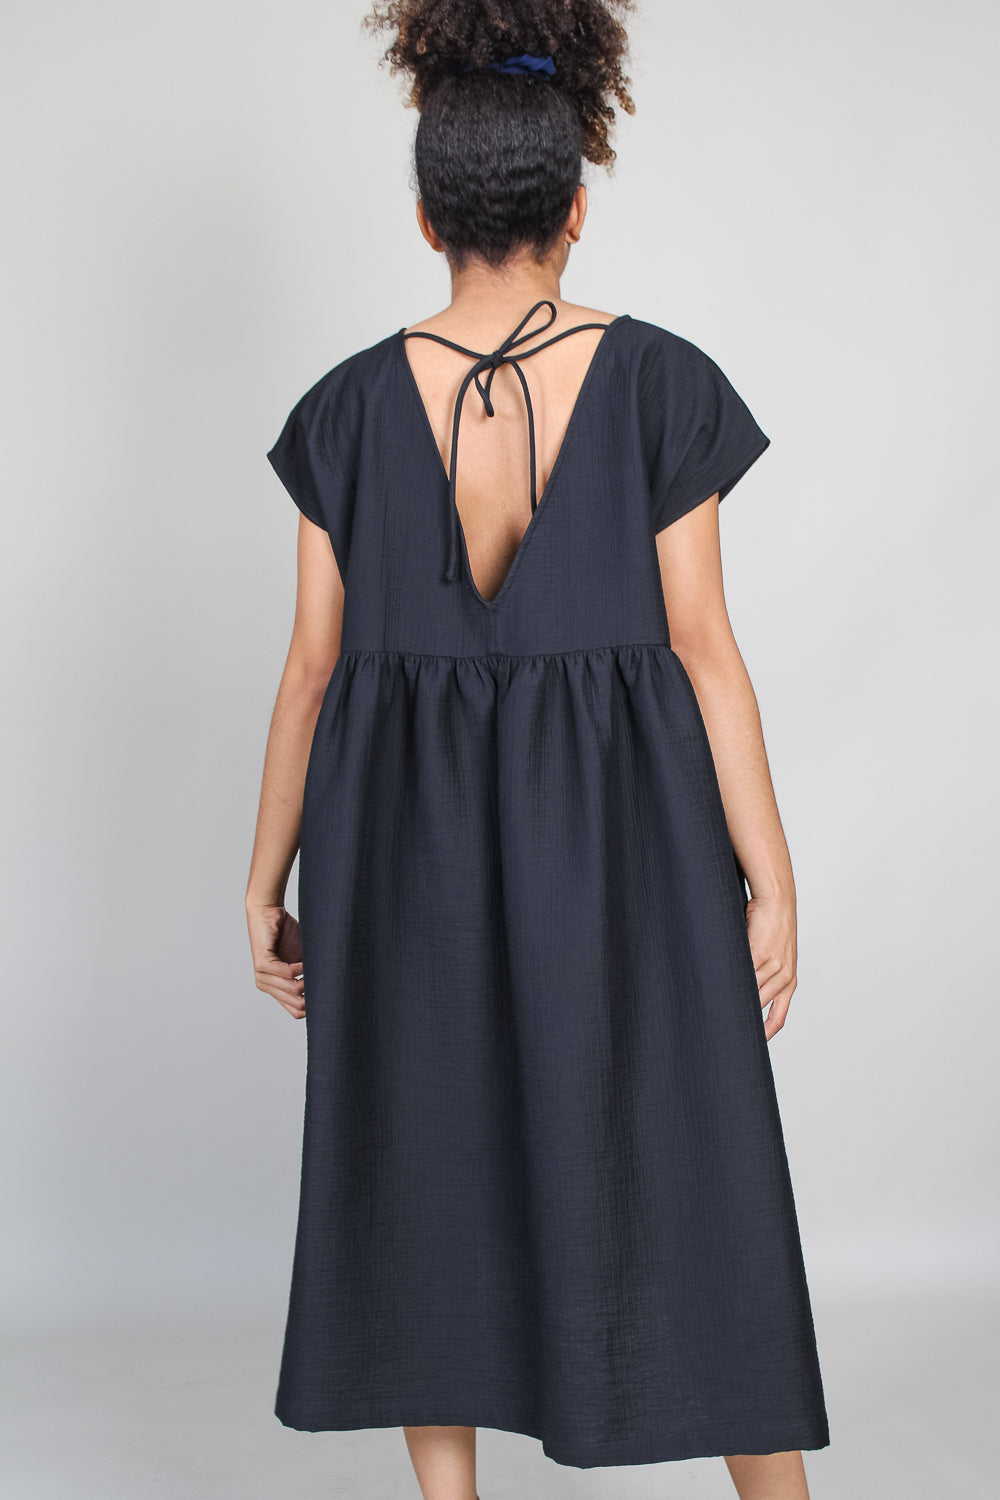 Casa Dress in Black